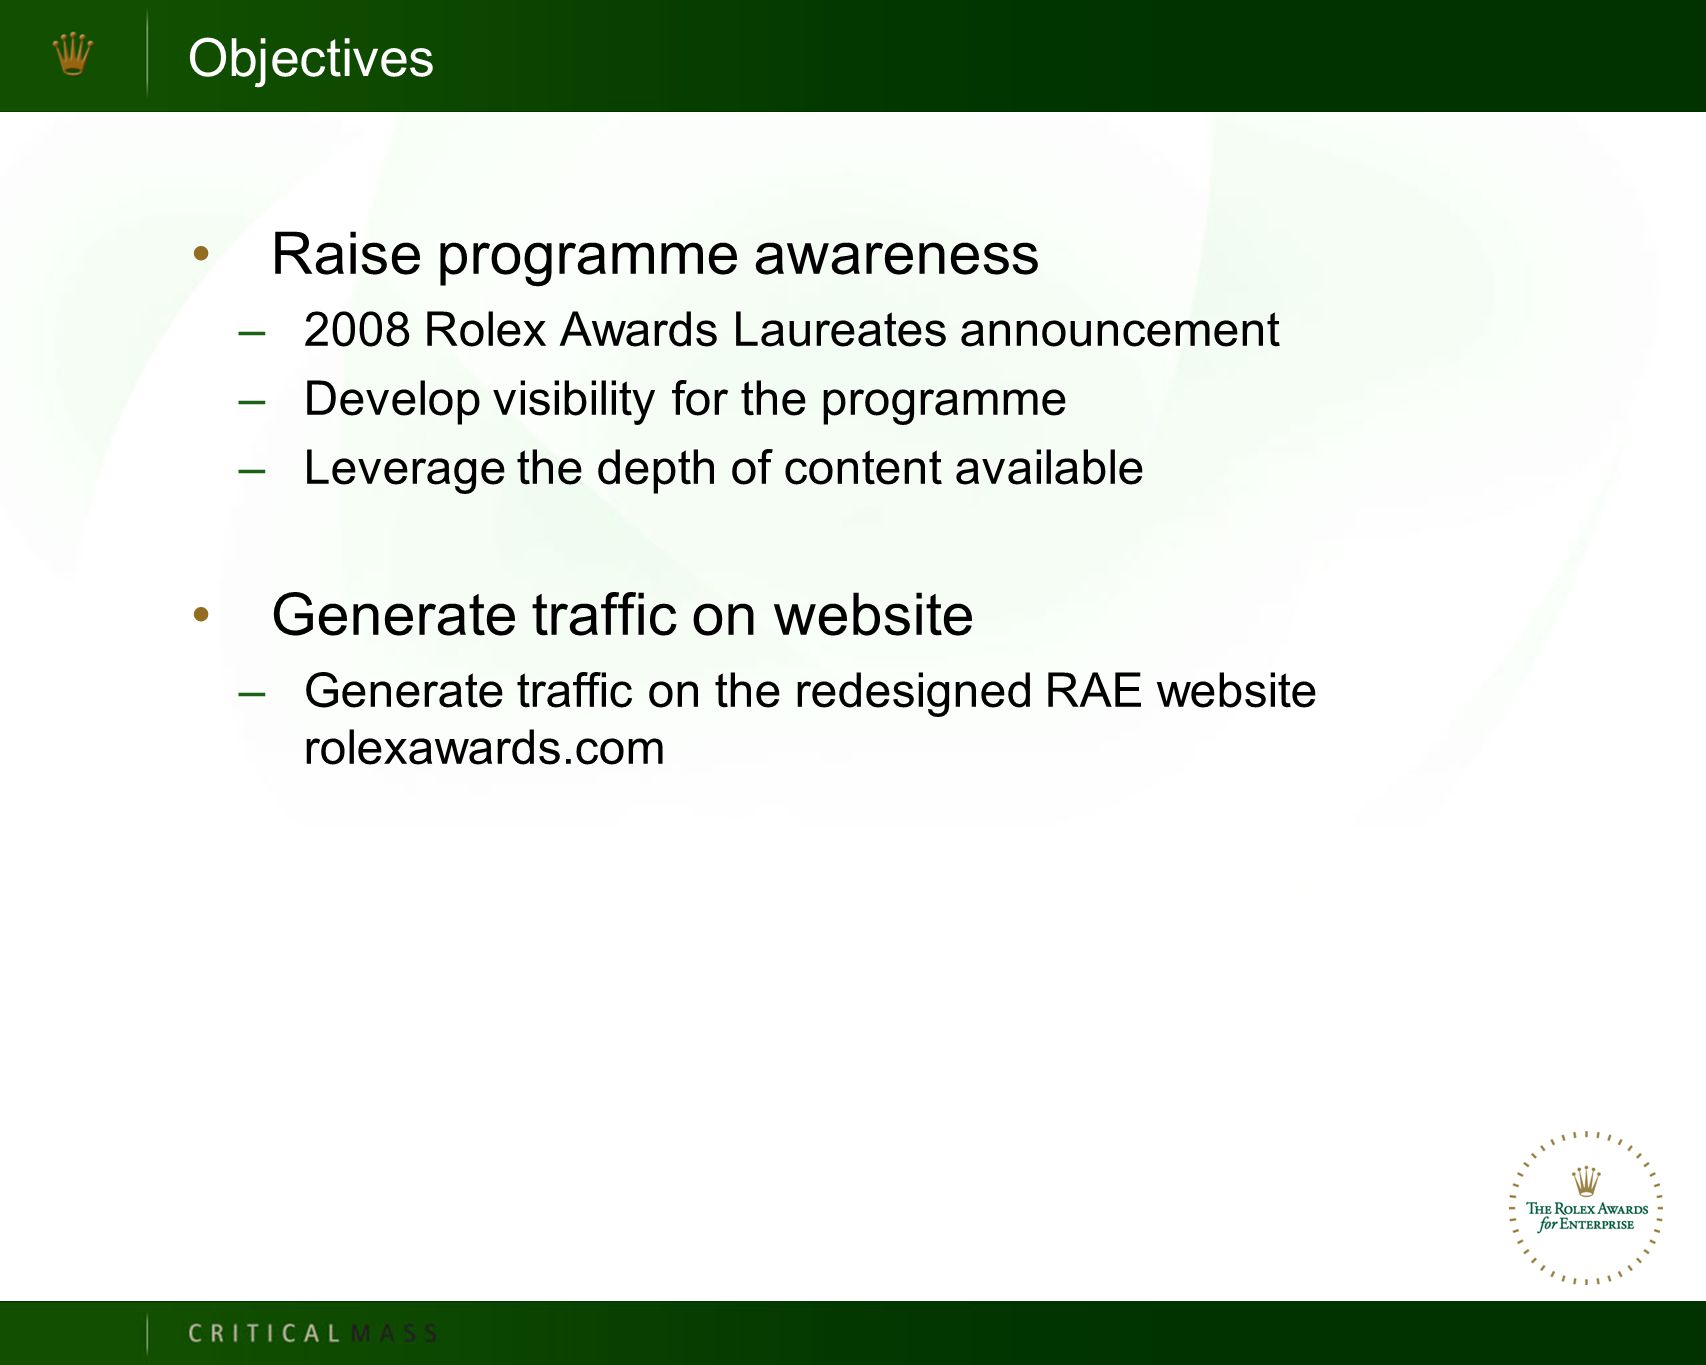 Objectives Raise programme awareness –2008 Rolex Awards Laureates announcement –Develop visibility for the programme –Leverage the depth of content available Generate traffic on website –Generate traffic on the redesigned RAE website rolexawards.com